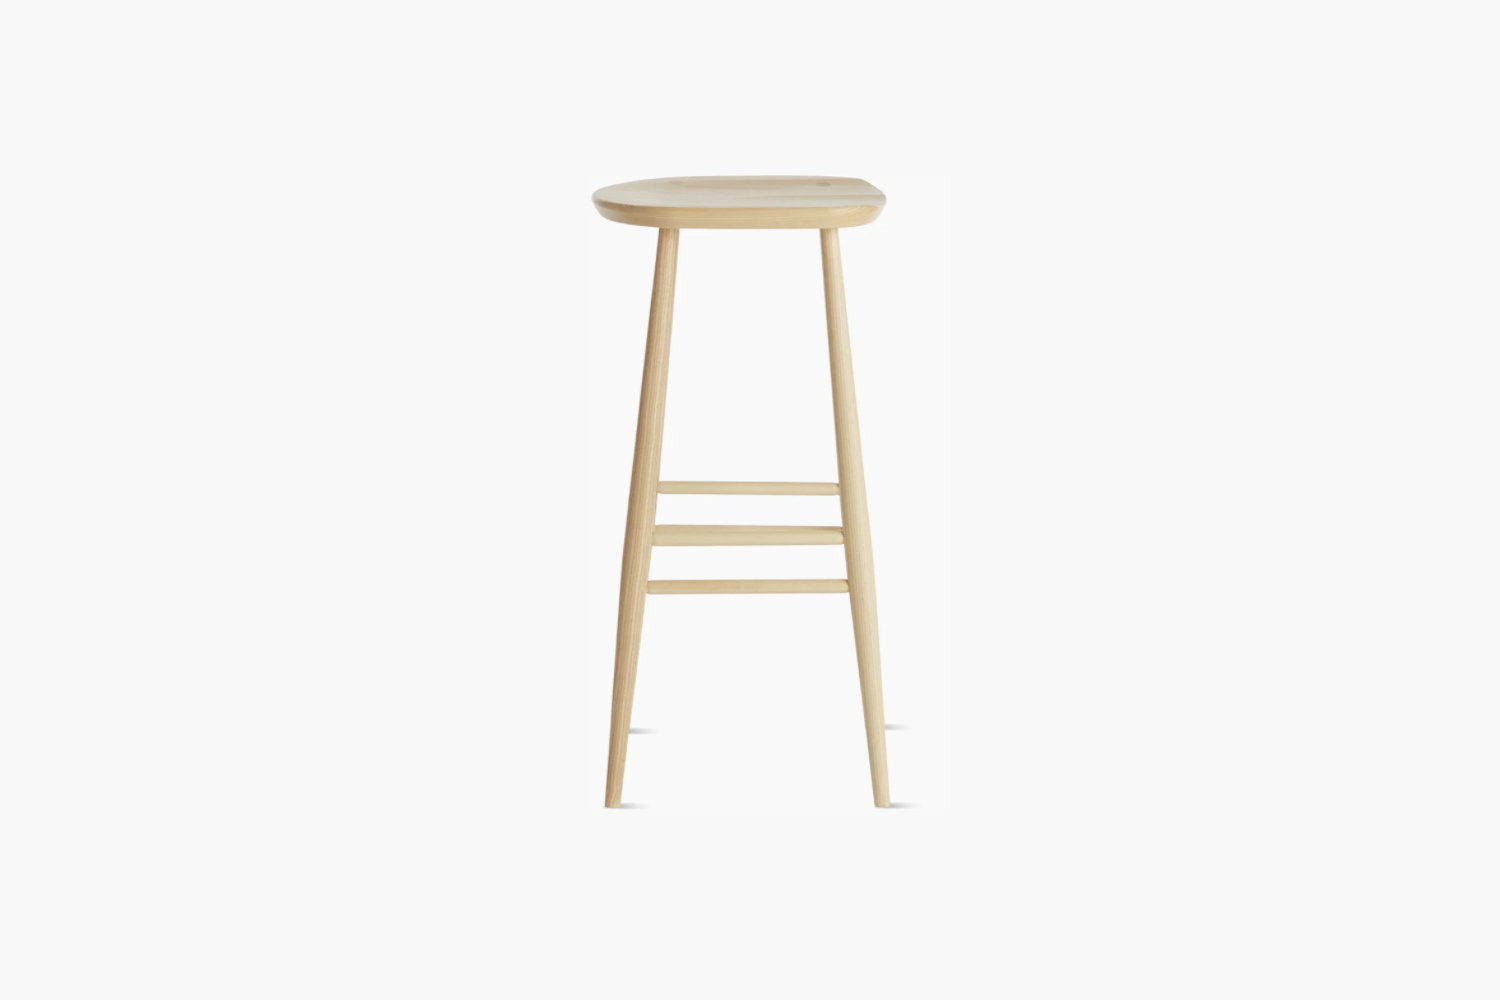 The Ercol Originals Stool is $348.50 at Design Within Reach.